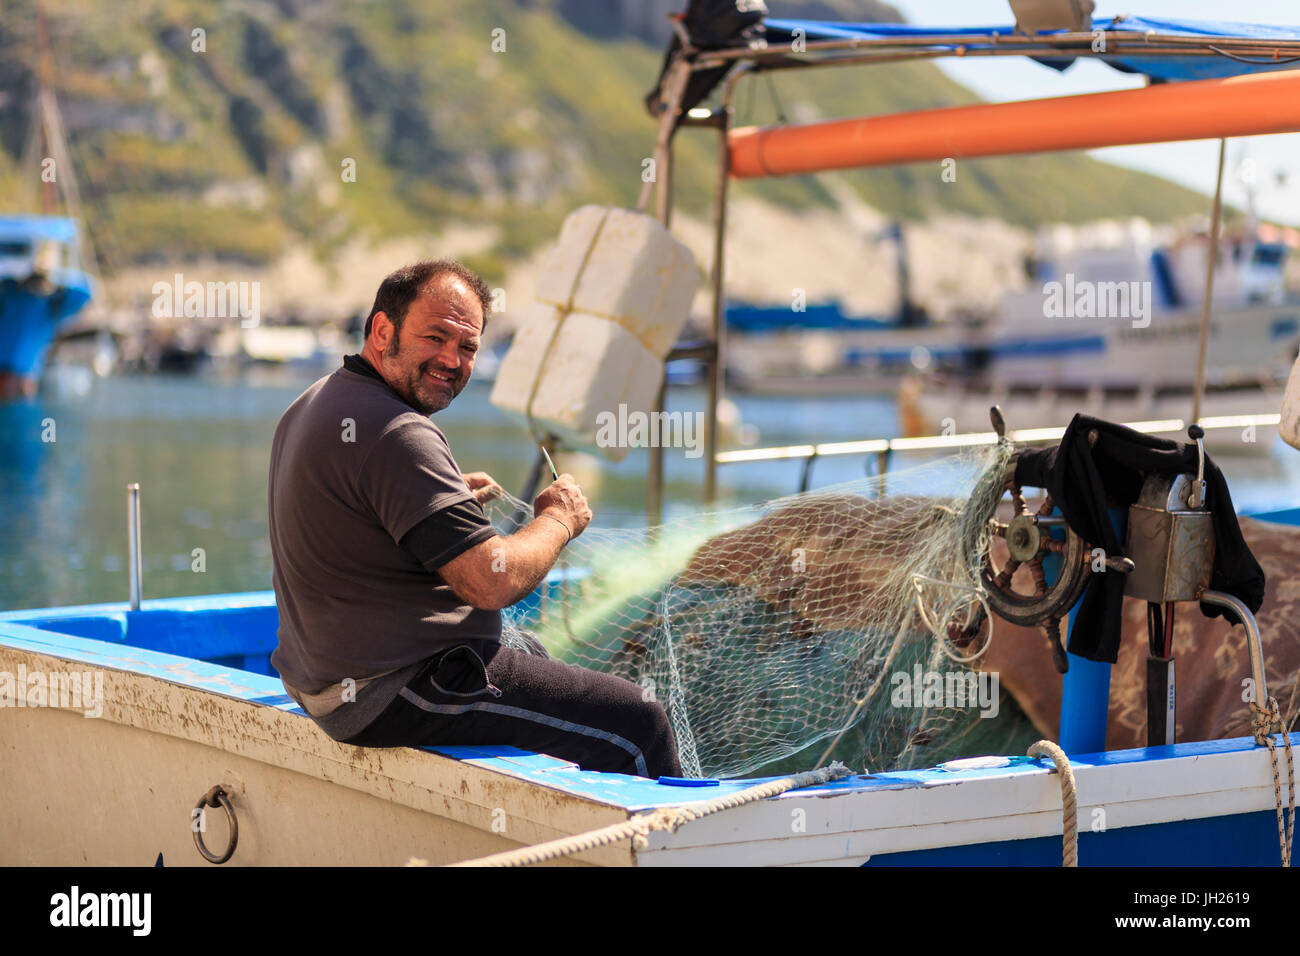 Marina Corricella harbour, smiling fisherman mending fishing nets on a boat, Procida Island, Bay of Naples, Campania, Stock Photo